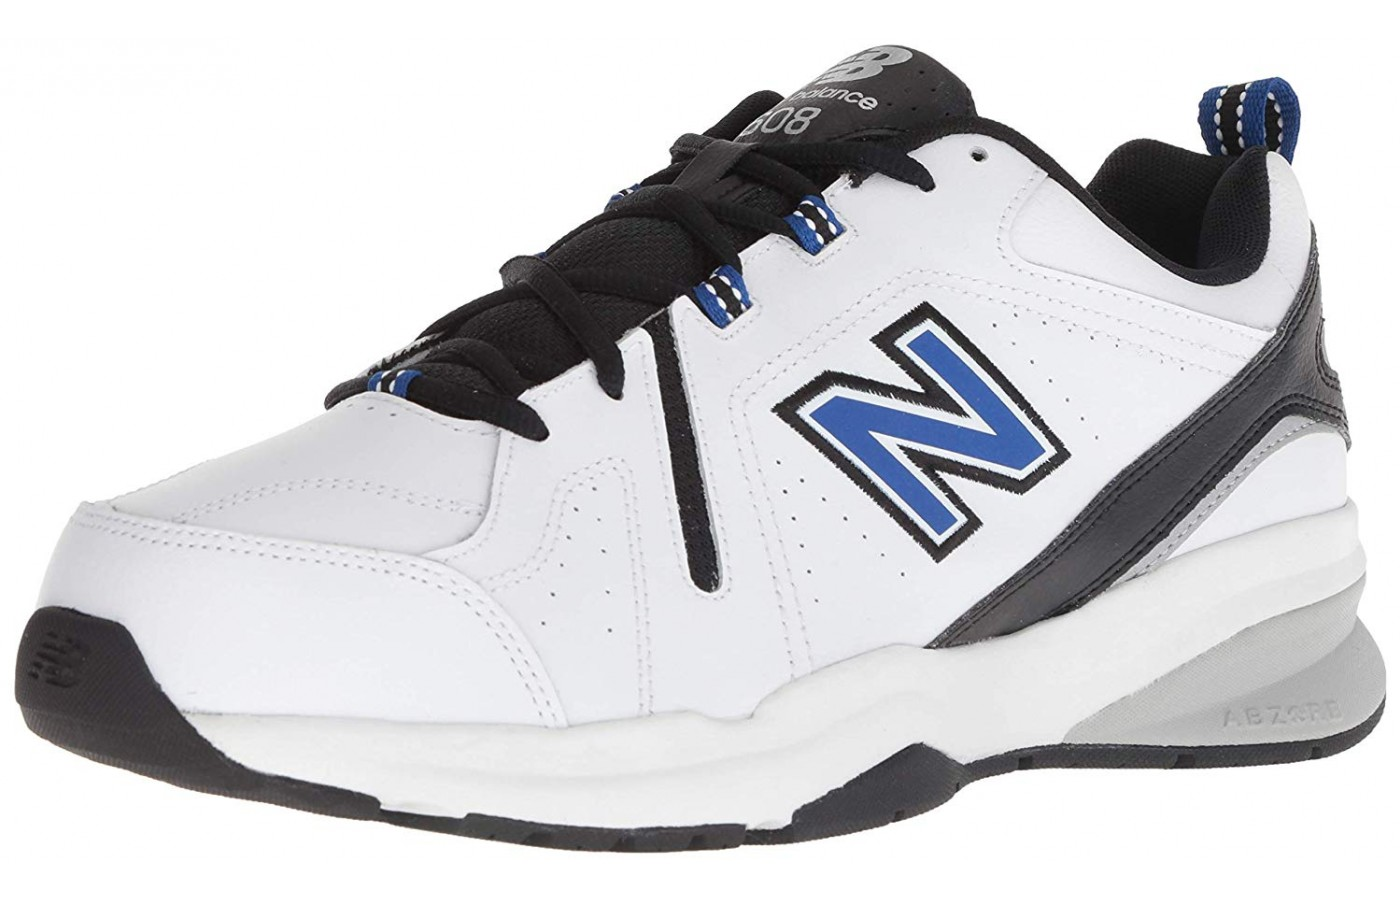 New Balance 608v5 Reviewed & Rated in 2019 | WalkJogRun